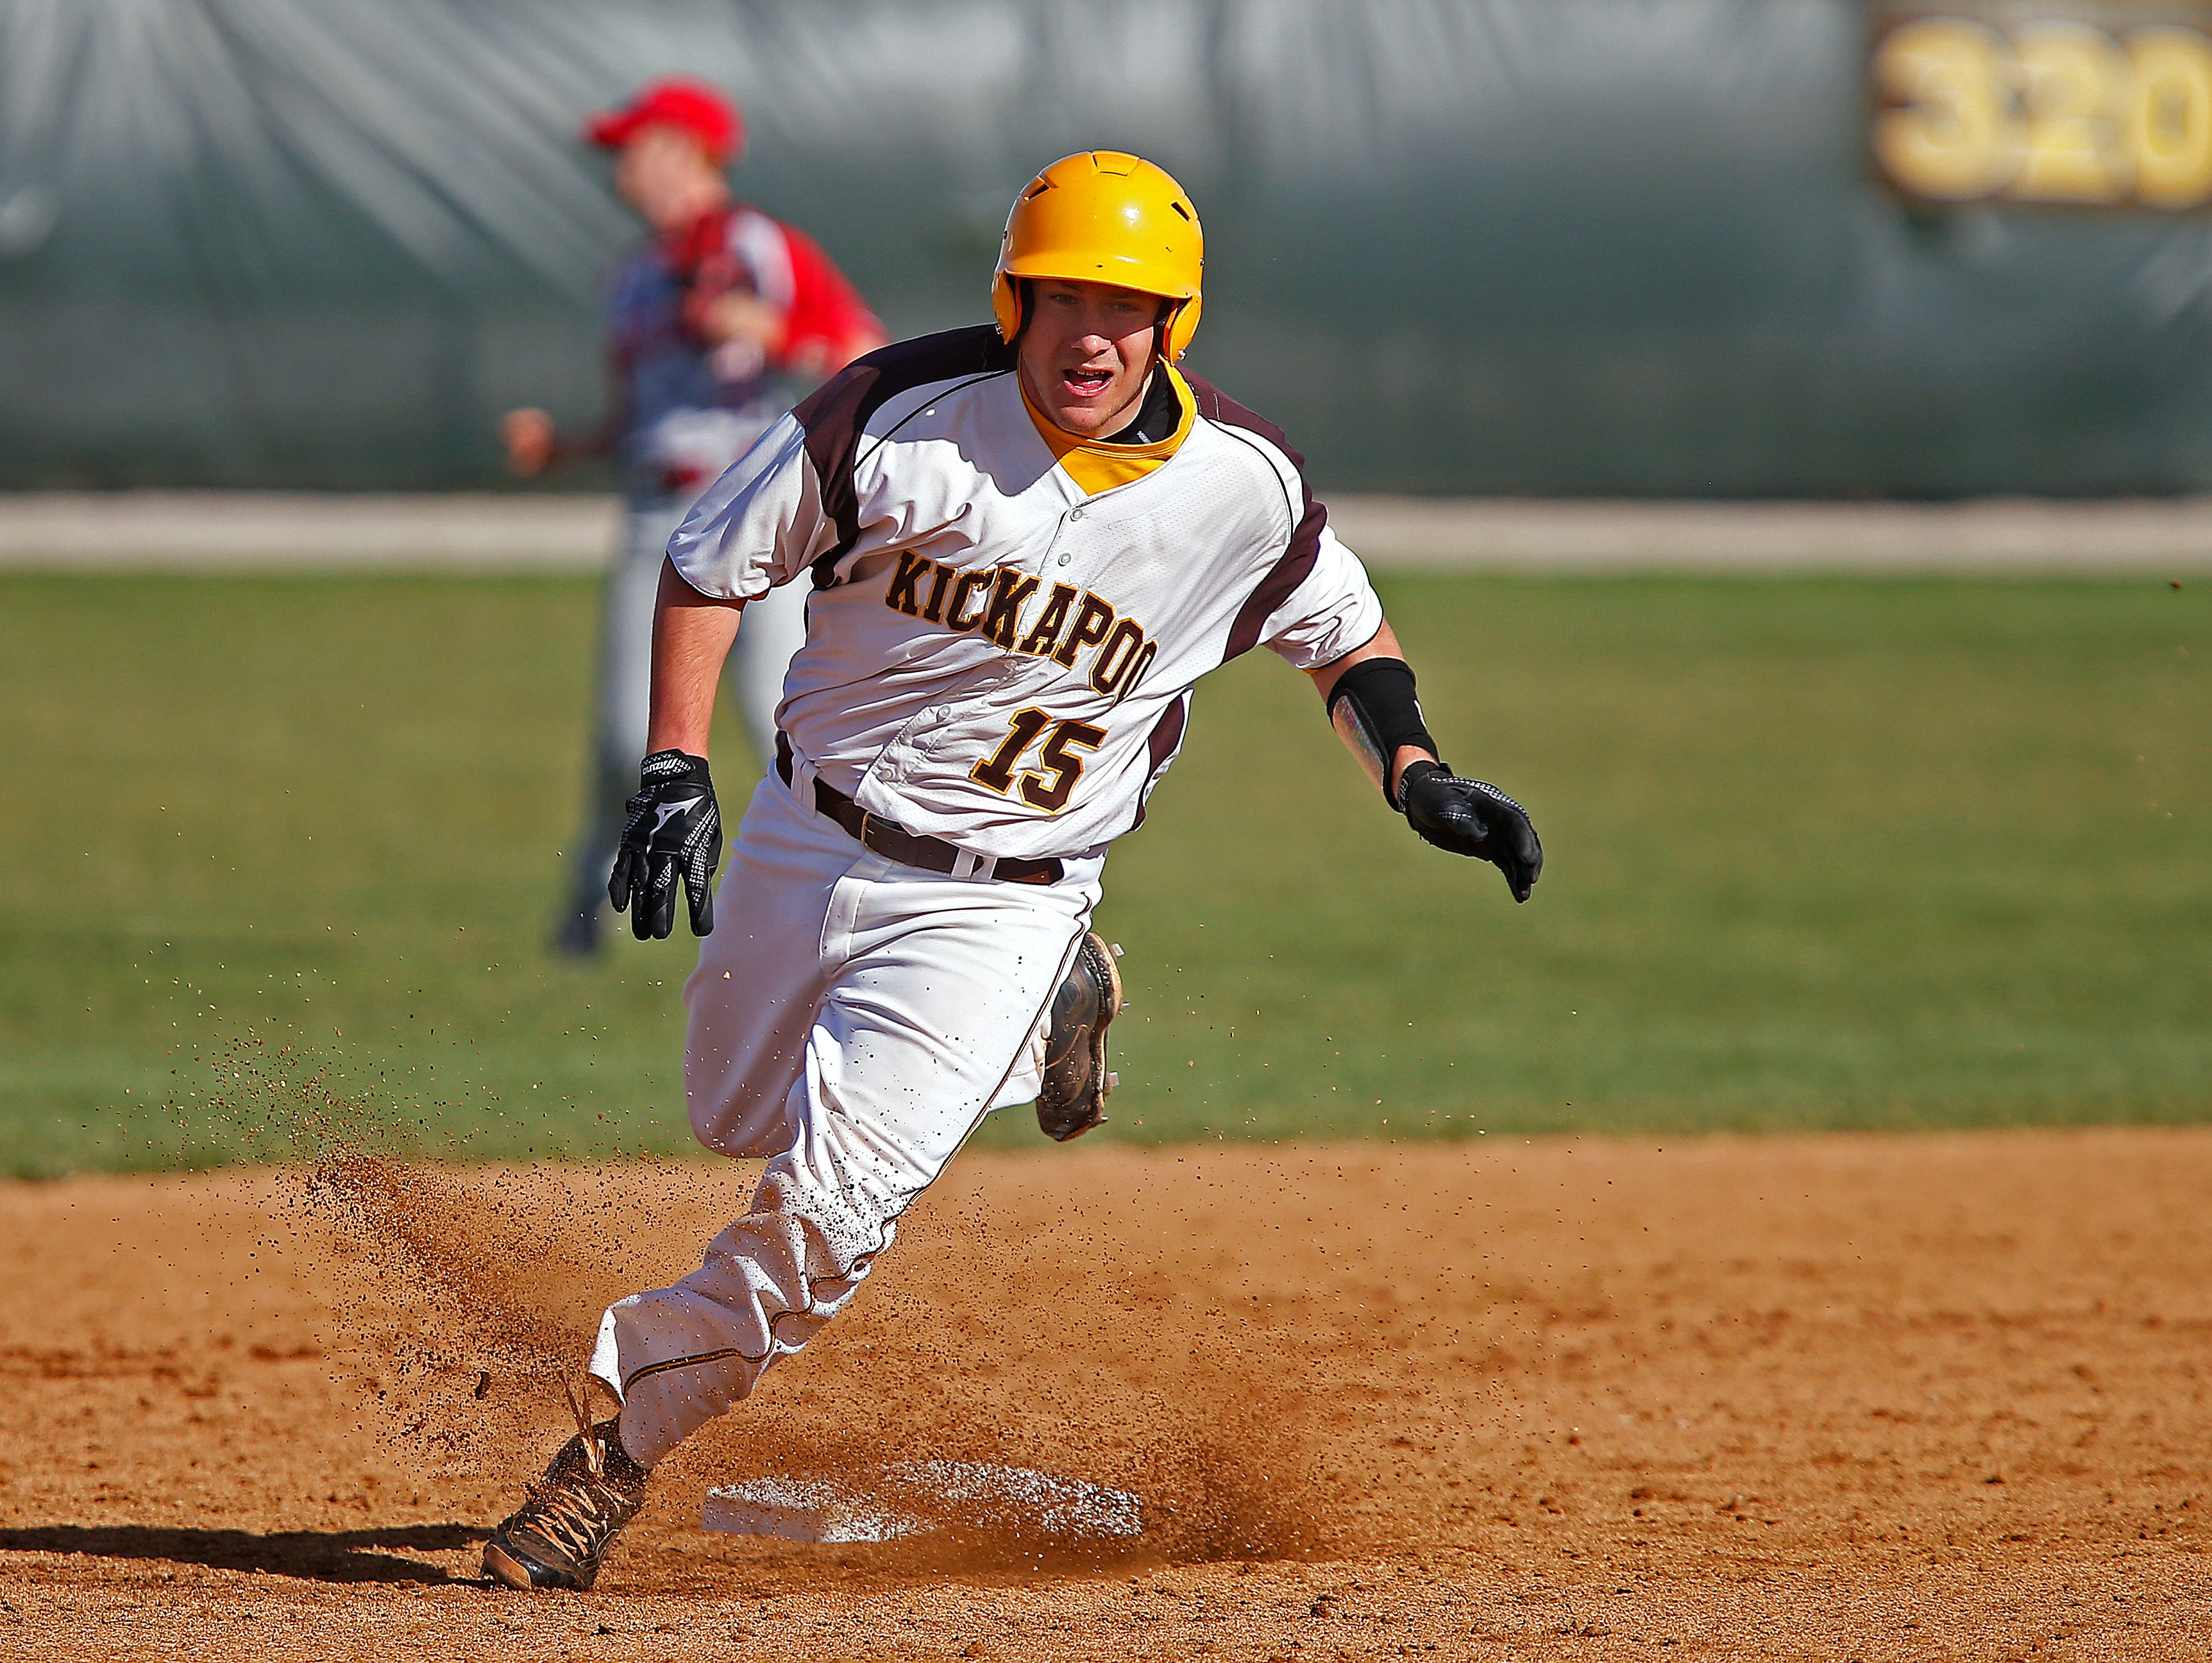 Kickapoo High School catcher Westin Gann (15) attempts to round out second base during second inning action of the high school baseball game between Kickapoo and Ozark at Kickapoo High School in Springfield, Mo. on March 29, 2016.